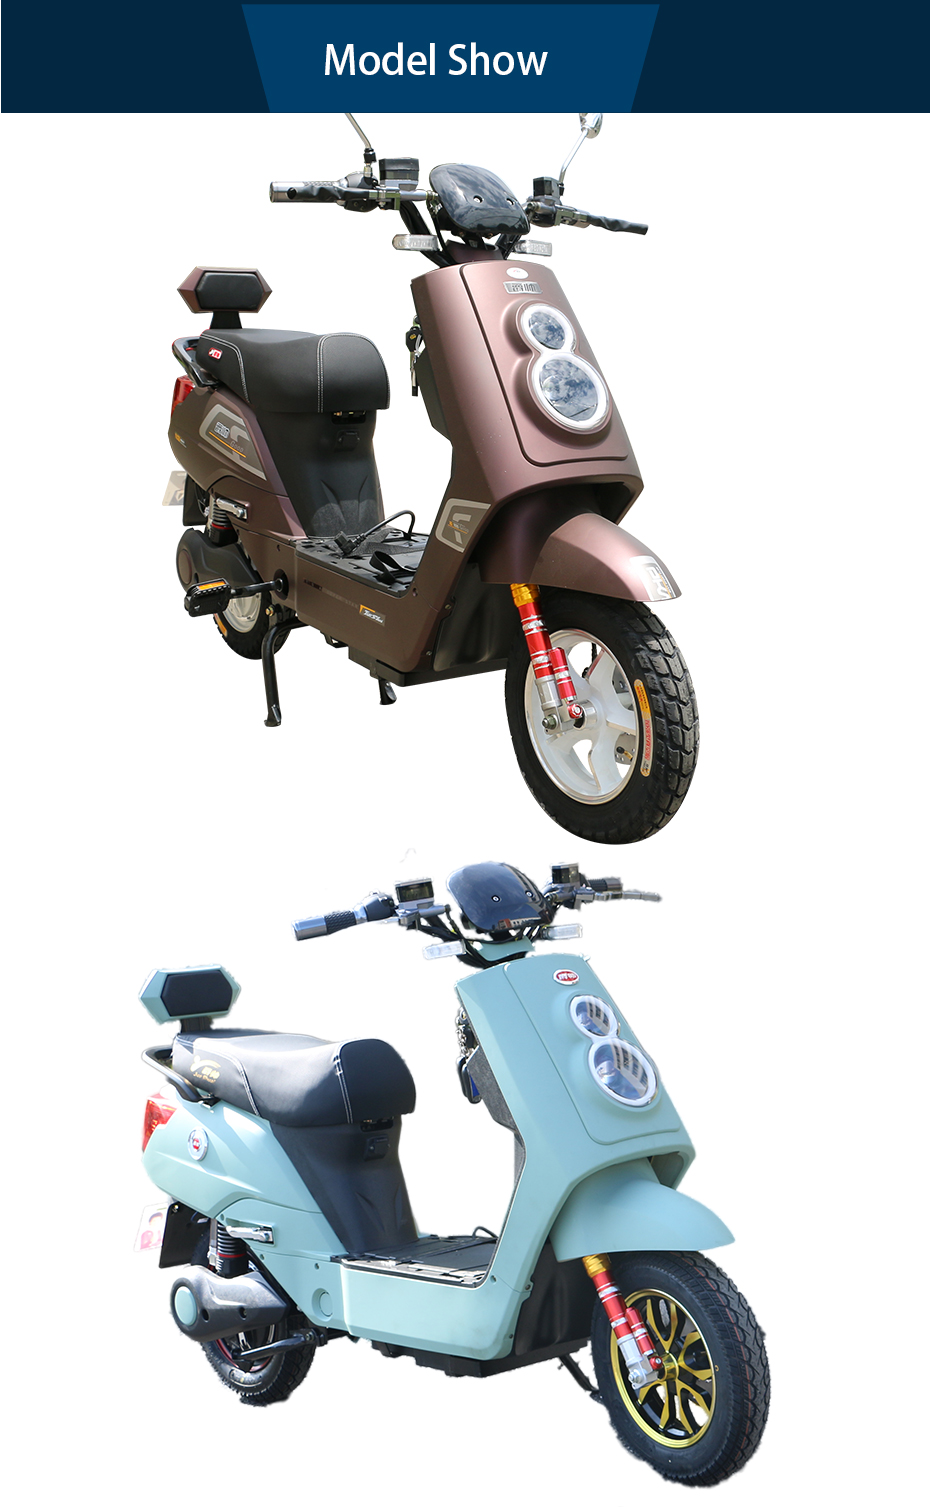 HTB1pAYHoHArBKNjSZFLq6A dVXag - Electrical motor Motorbike Electrical Bike For Man Commonplace Sort Made In Aluminum Alloy Body With One/Two Seat Electrical Scooter